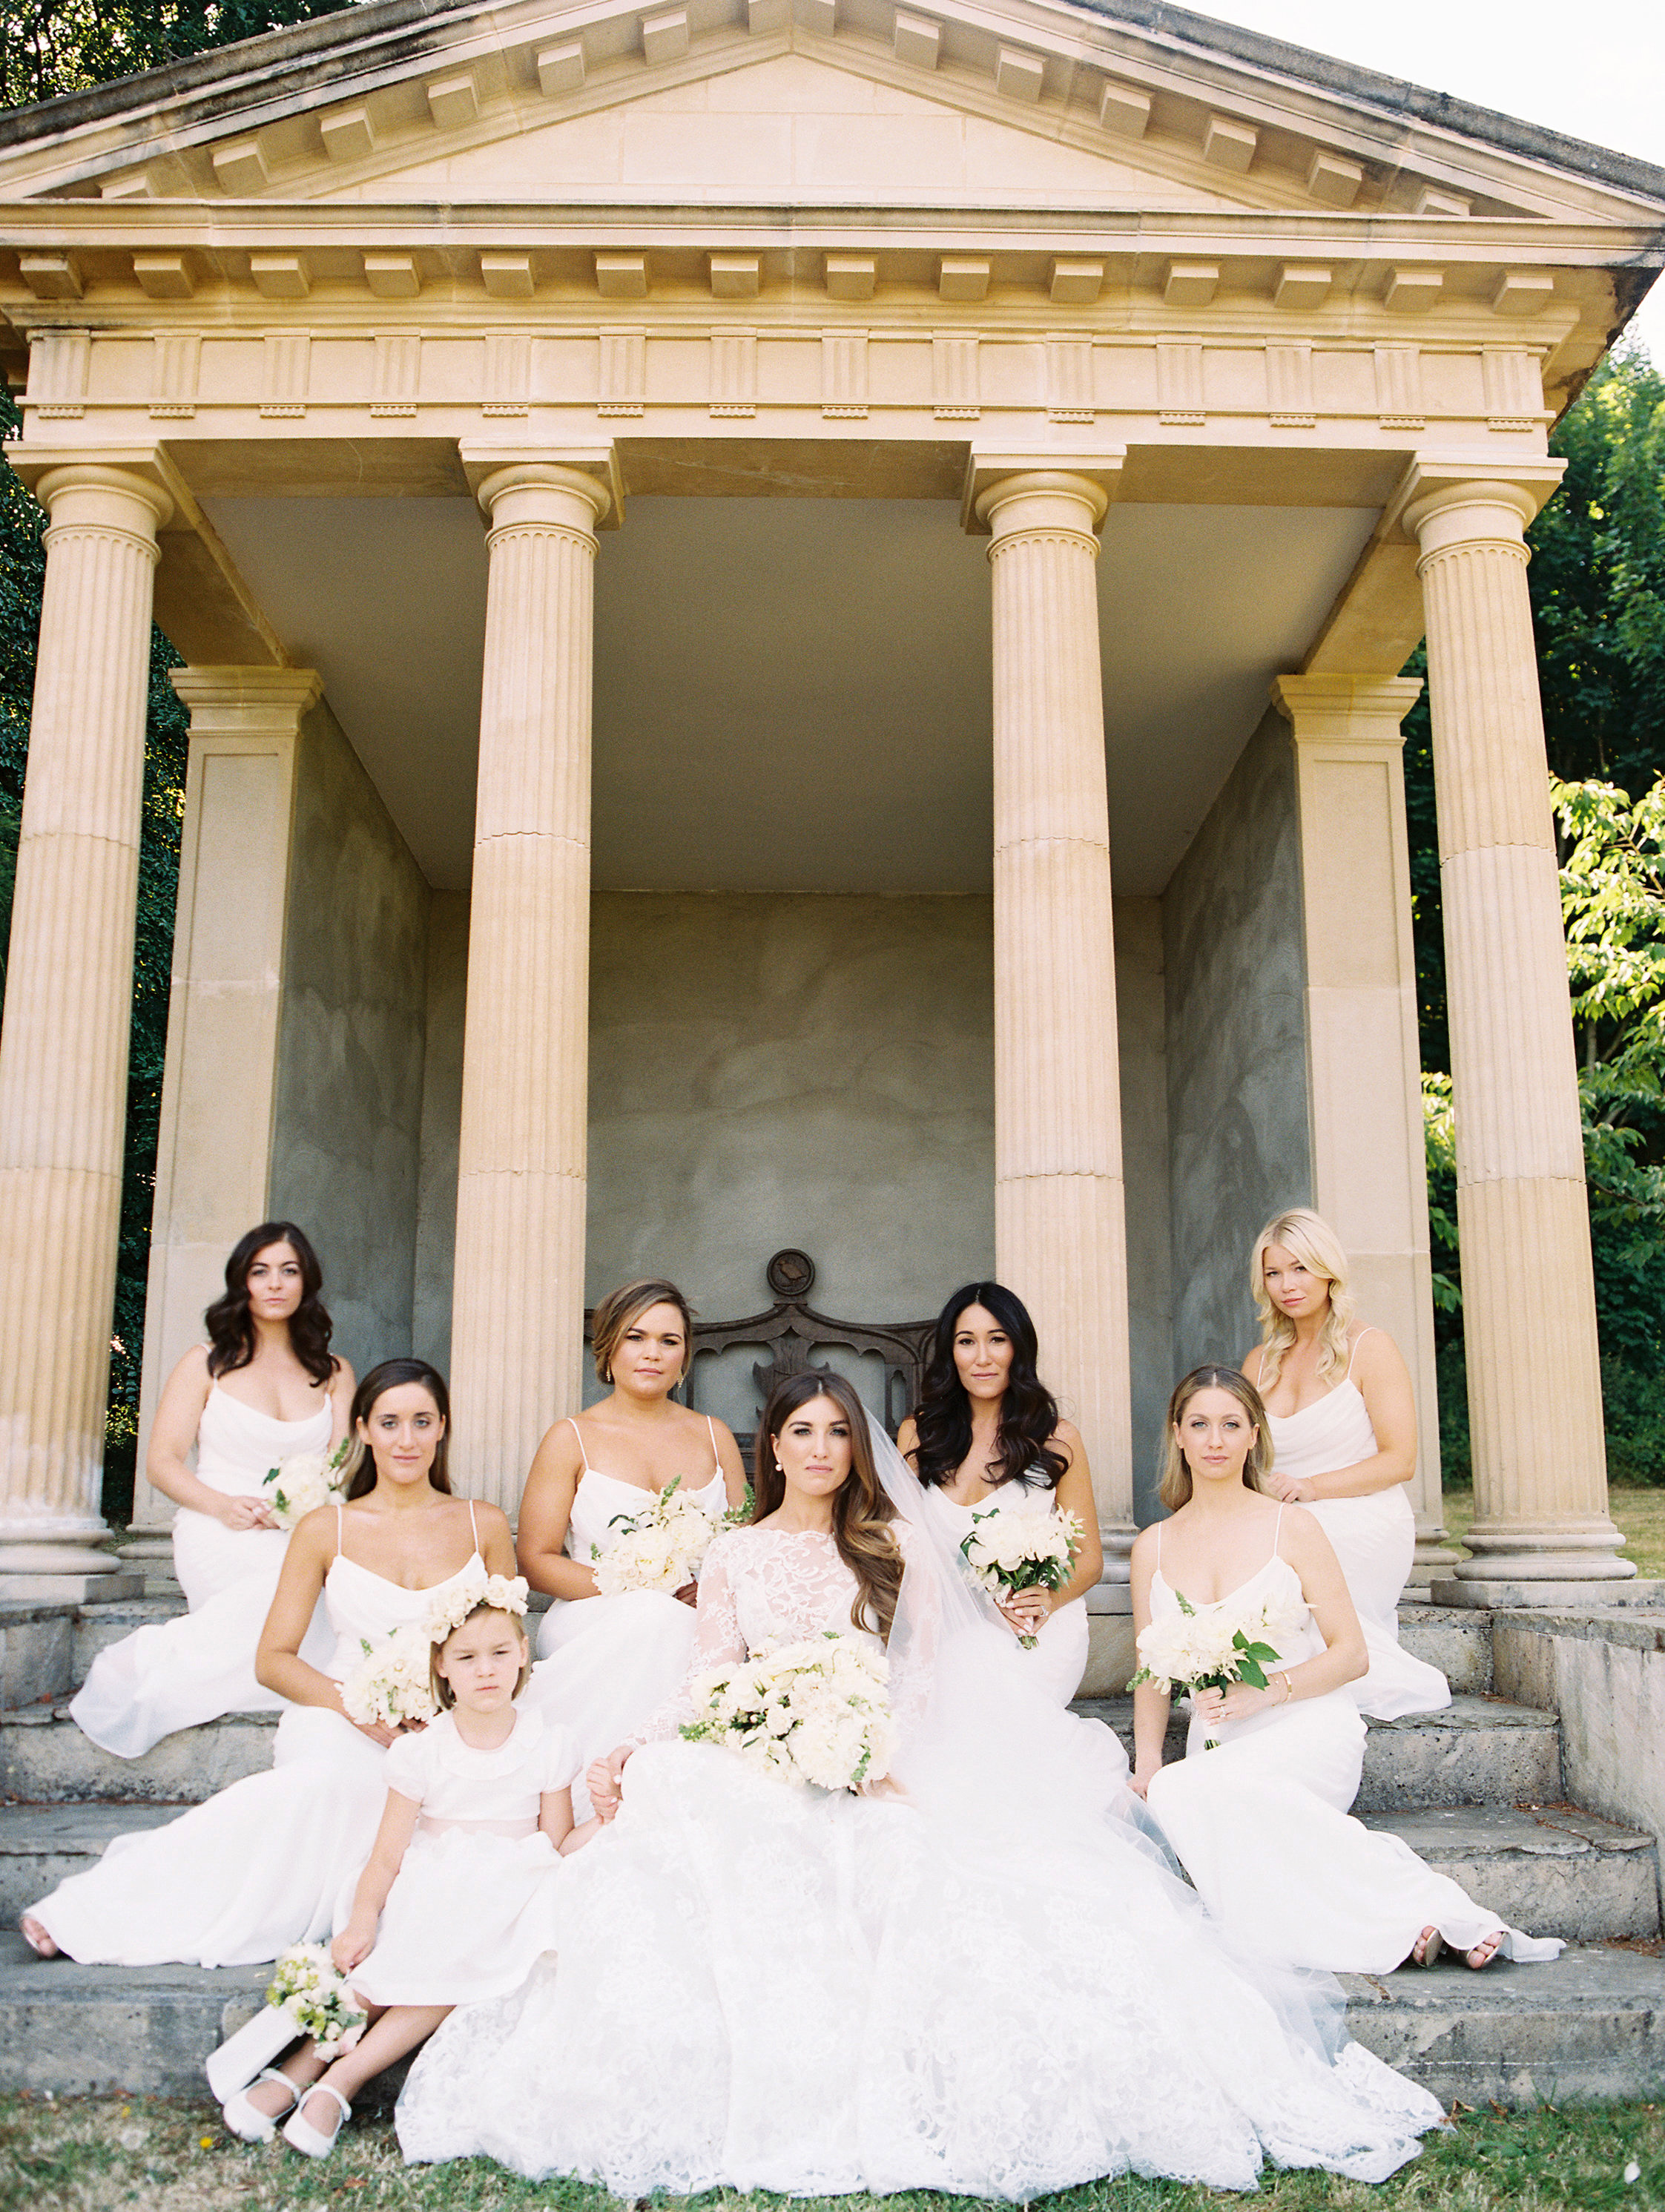 ramsey charles ireland wedding bridesmaids and bride on steps